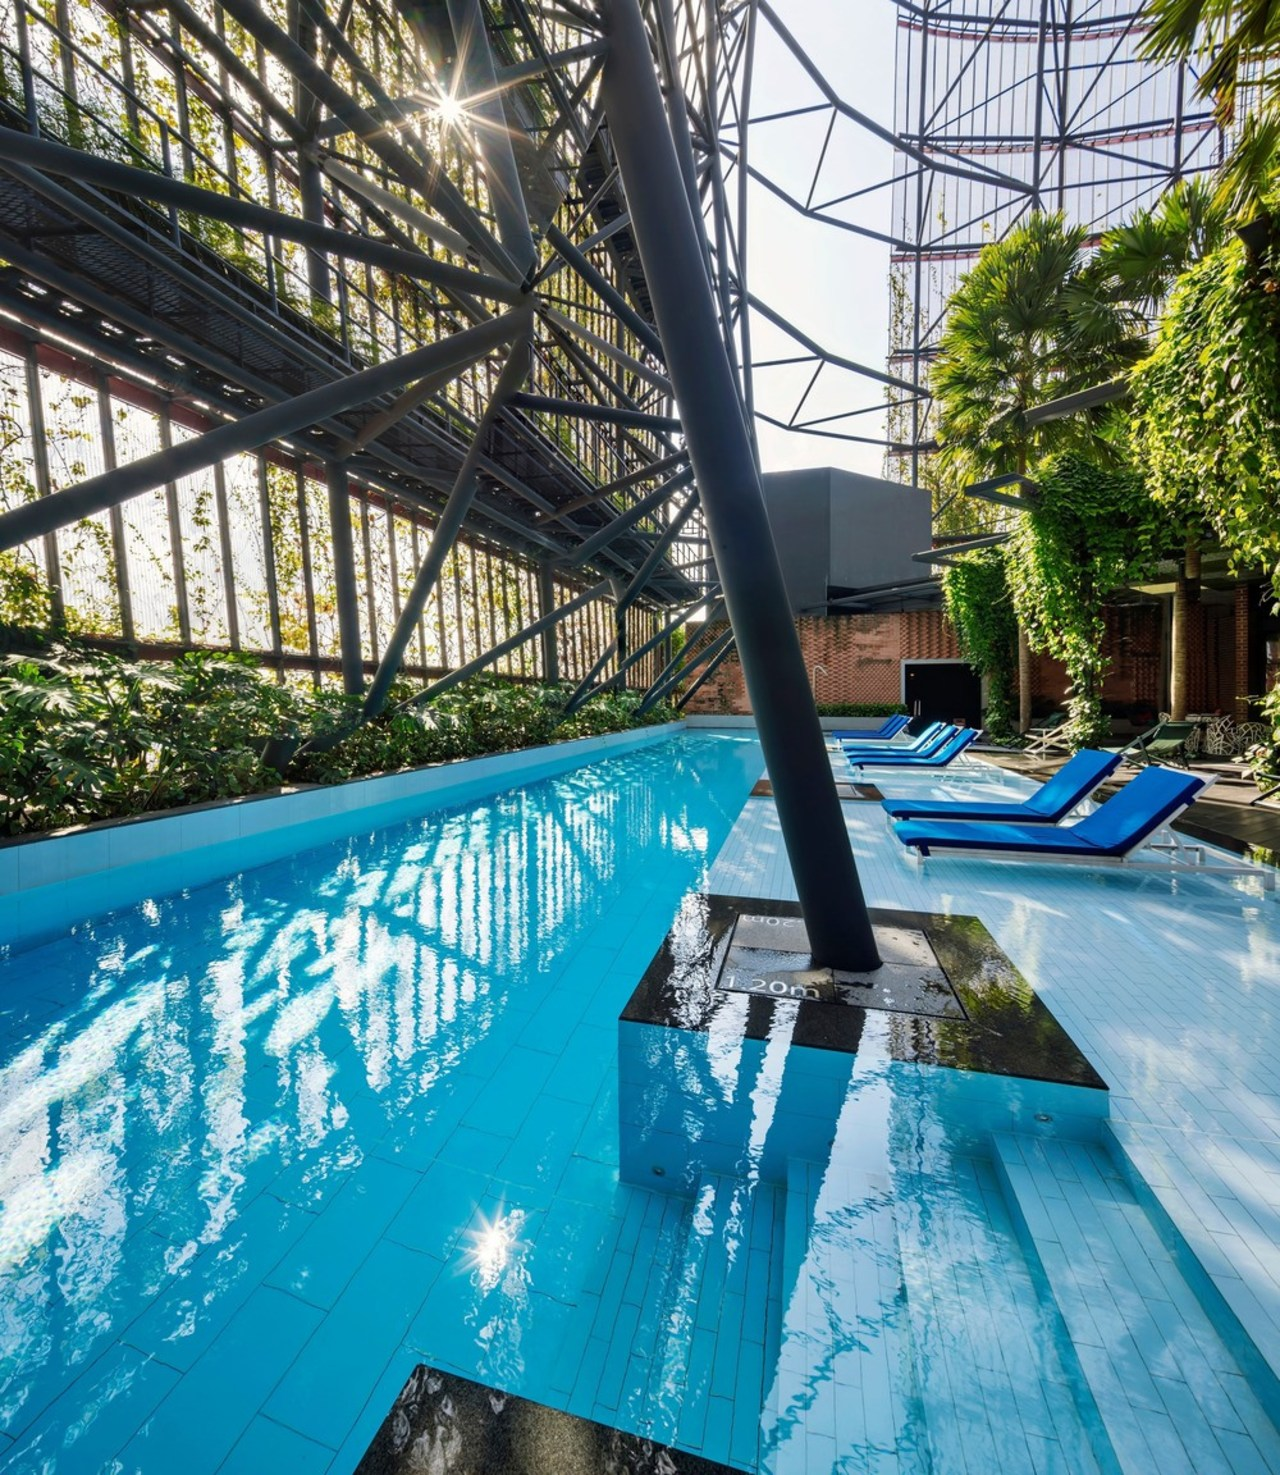 The entire building has the feel of a leisure, leisure centre, property, real estate, recreation, resort, resort town, swimming pool, water, water park, teal